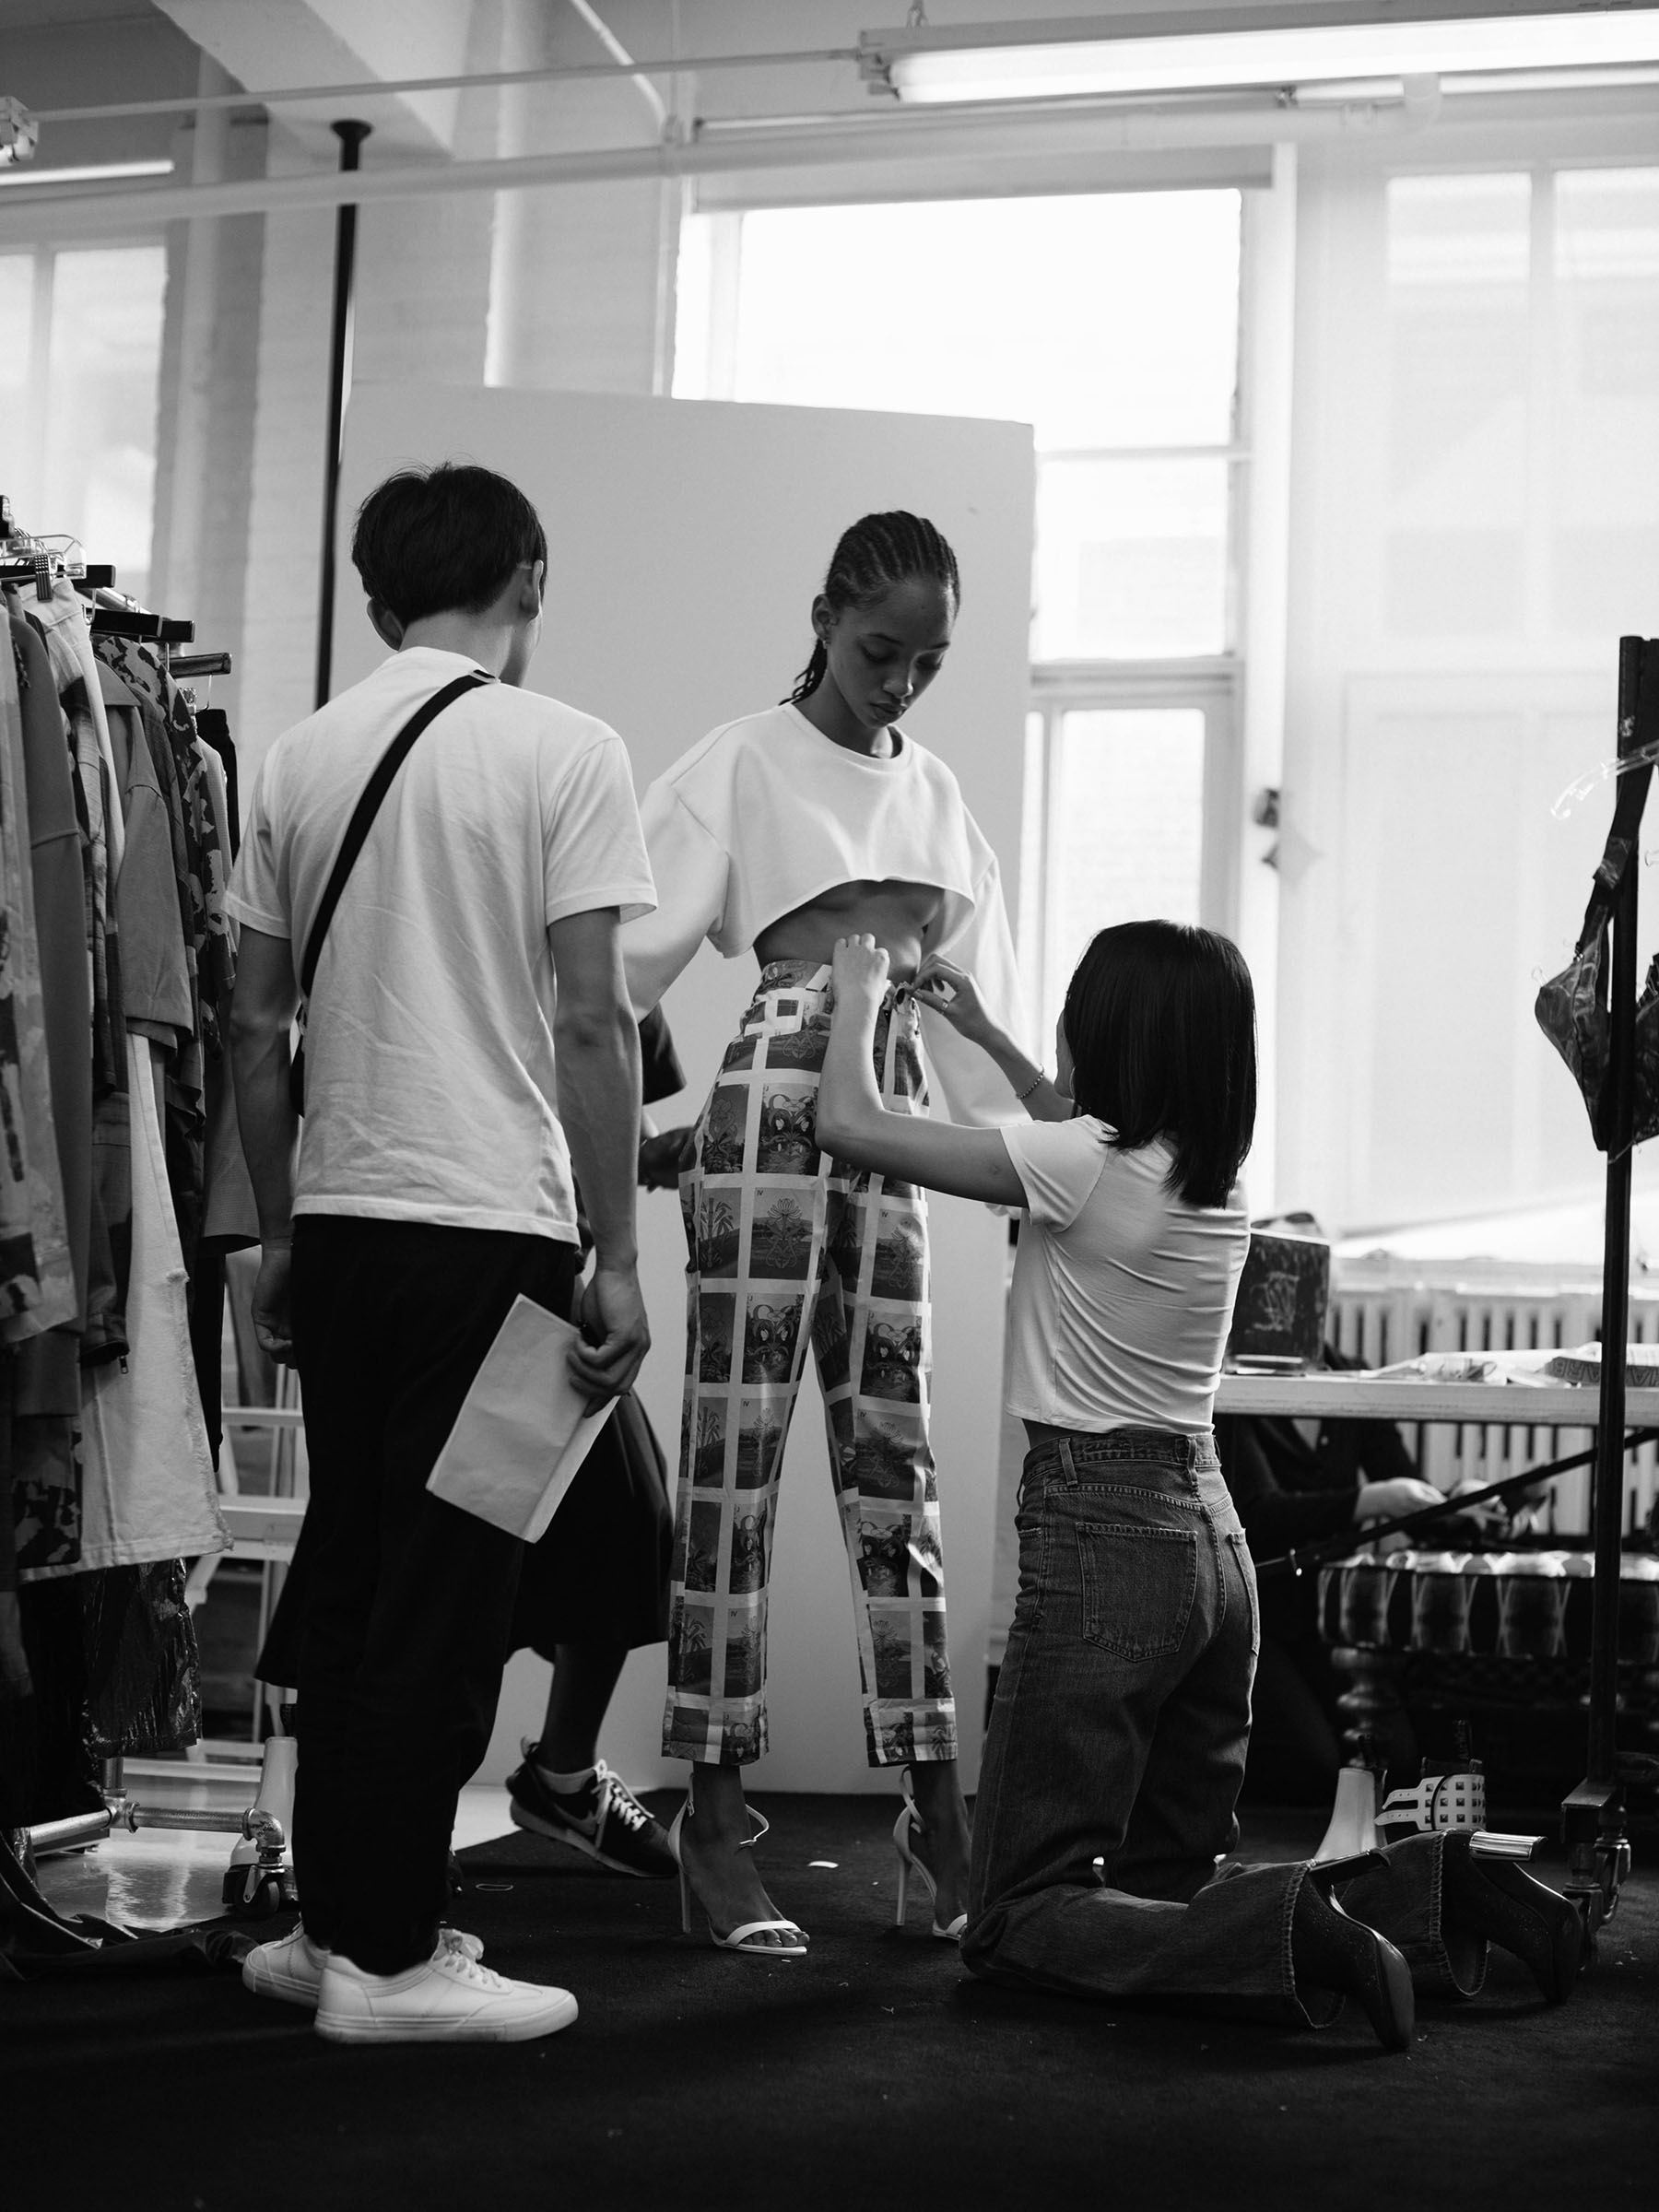 Using Your Assets How Brands Maximize Fashion Week